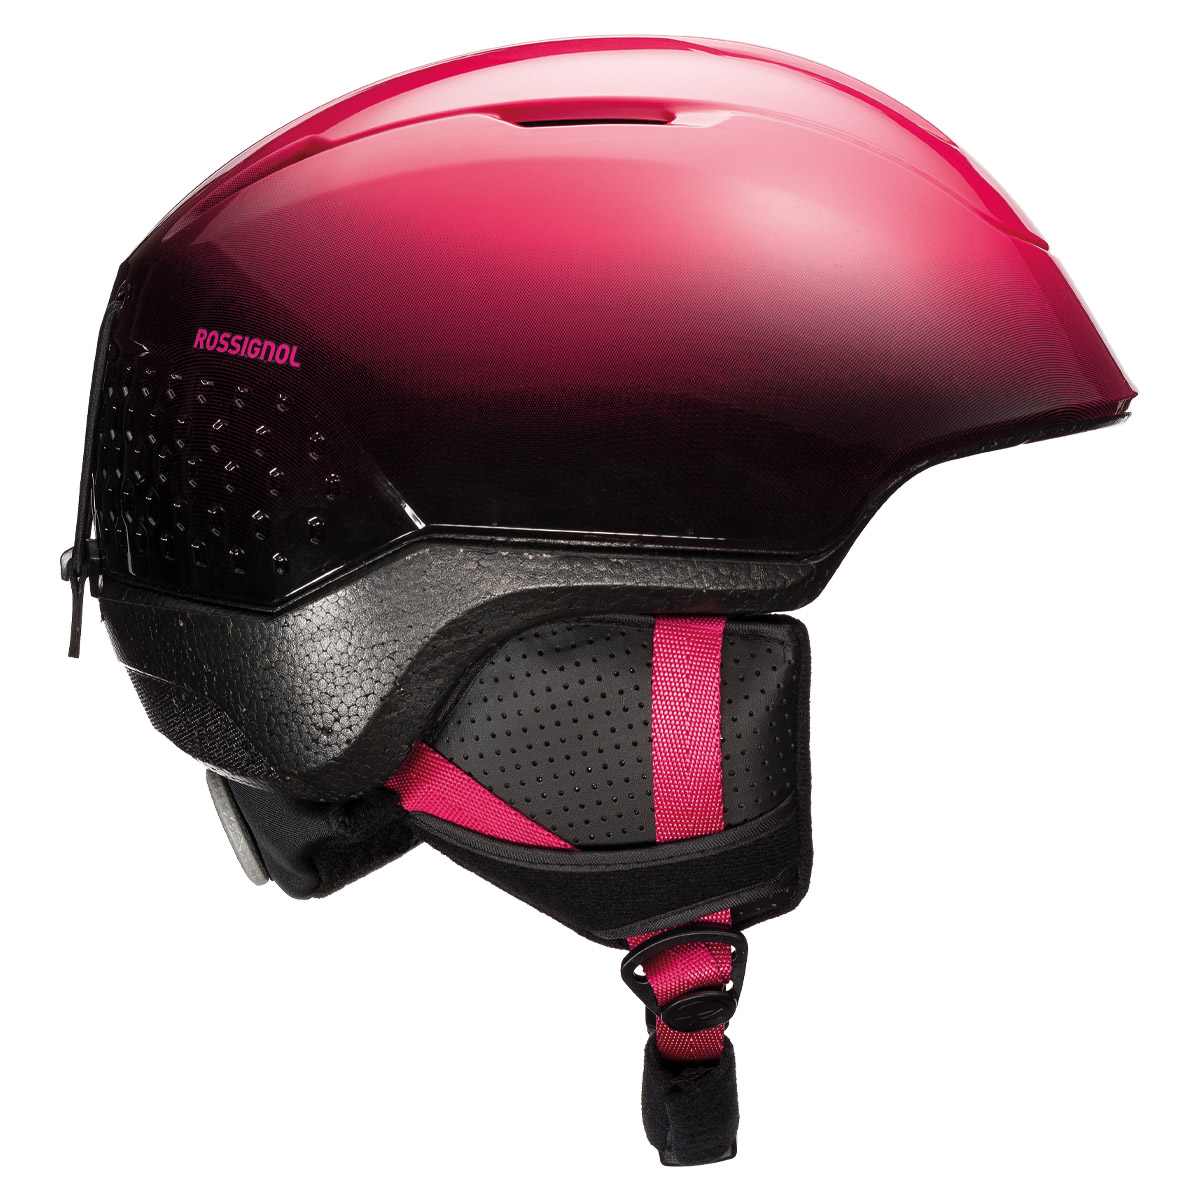 Casco sci Rossignol Whoopee Impacts Pink (Colore: pink, Taglia: 52/55.5)